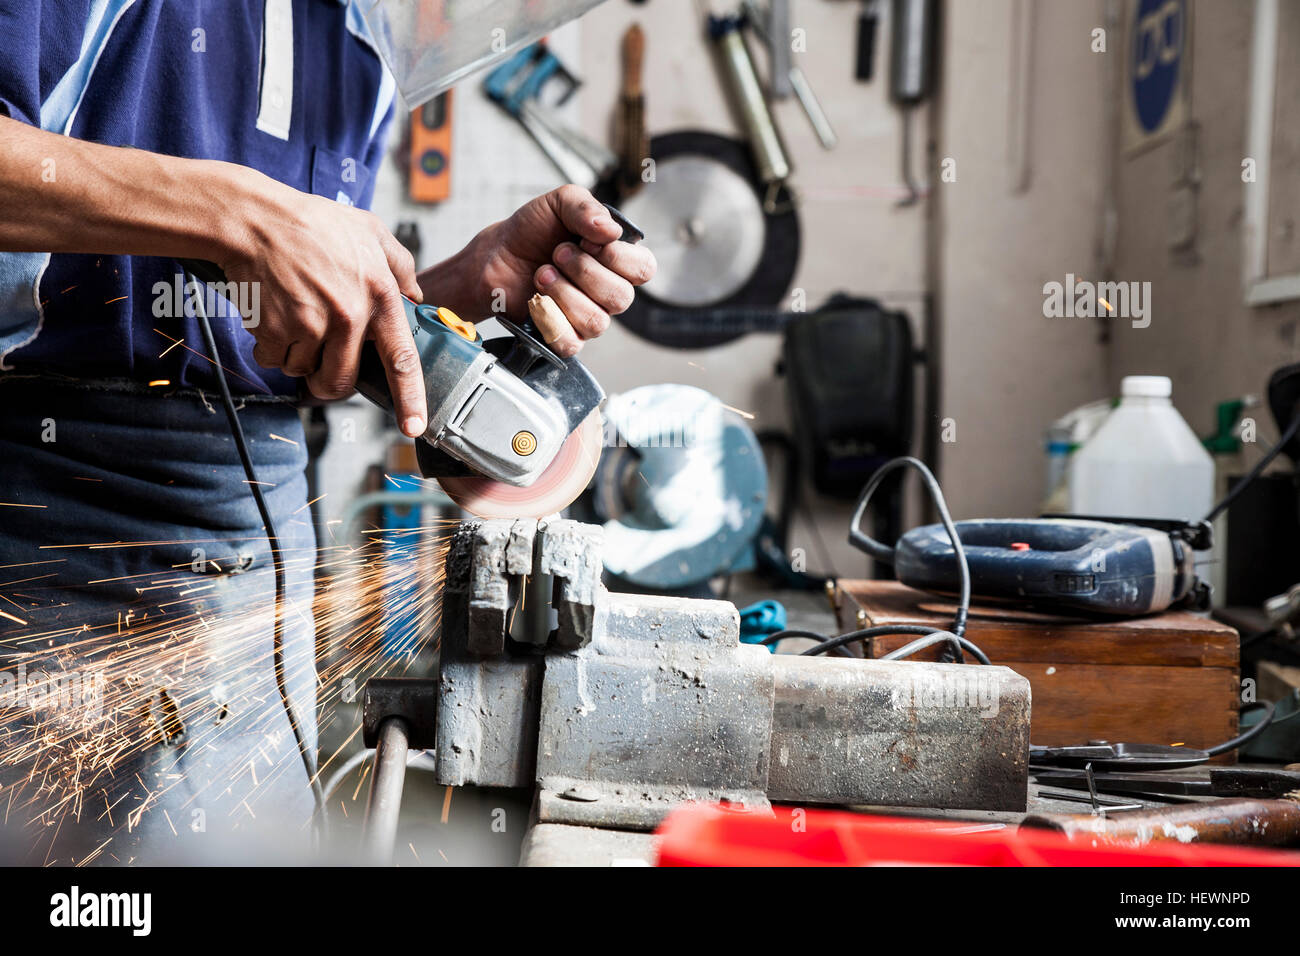 Mid section of young man using angle grinder in repair workshop - Stock Image